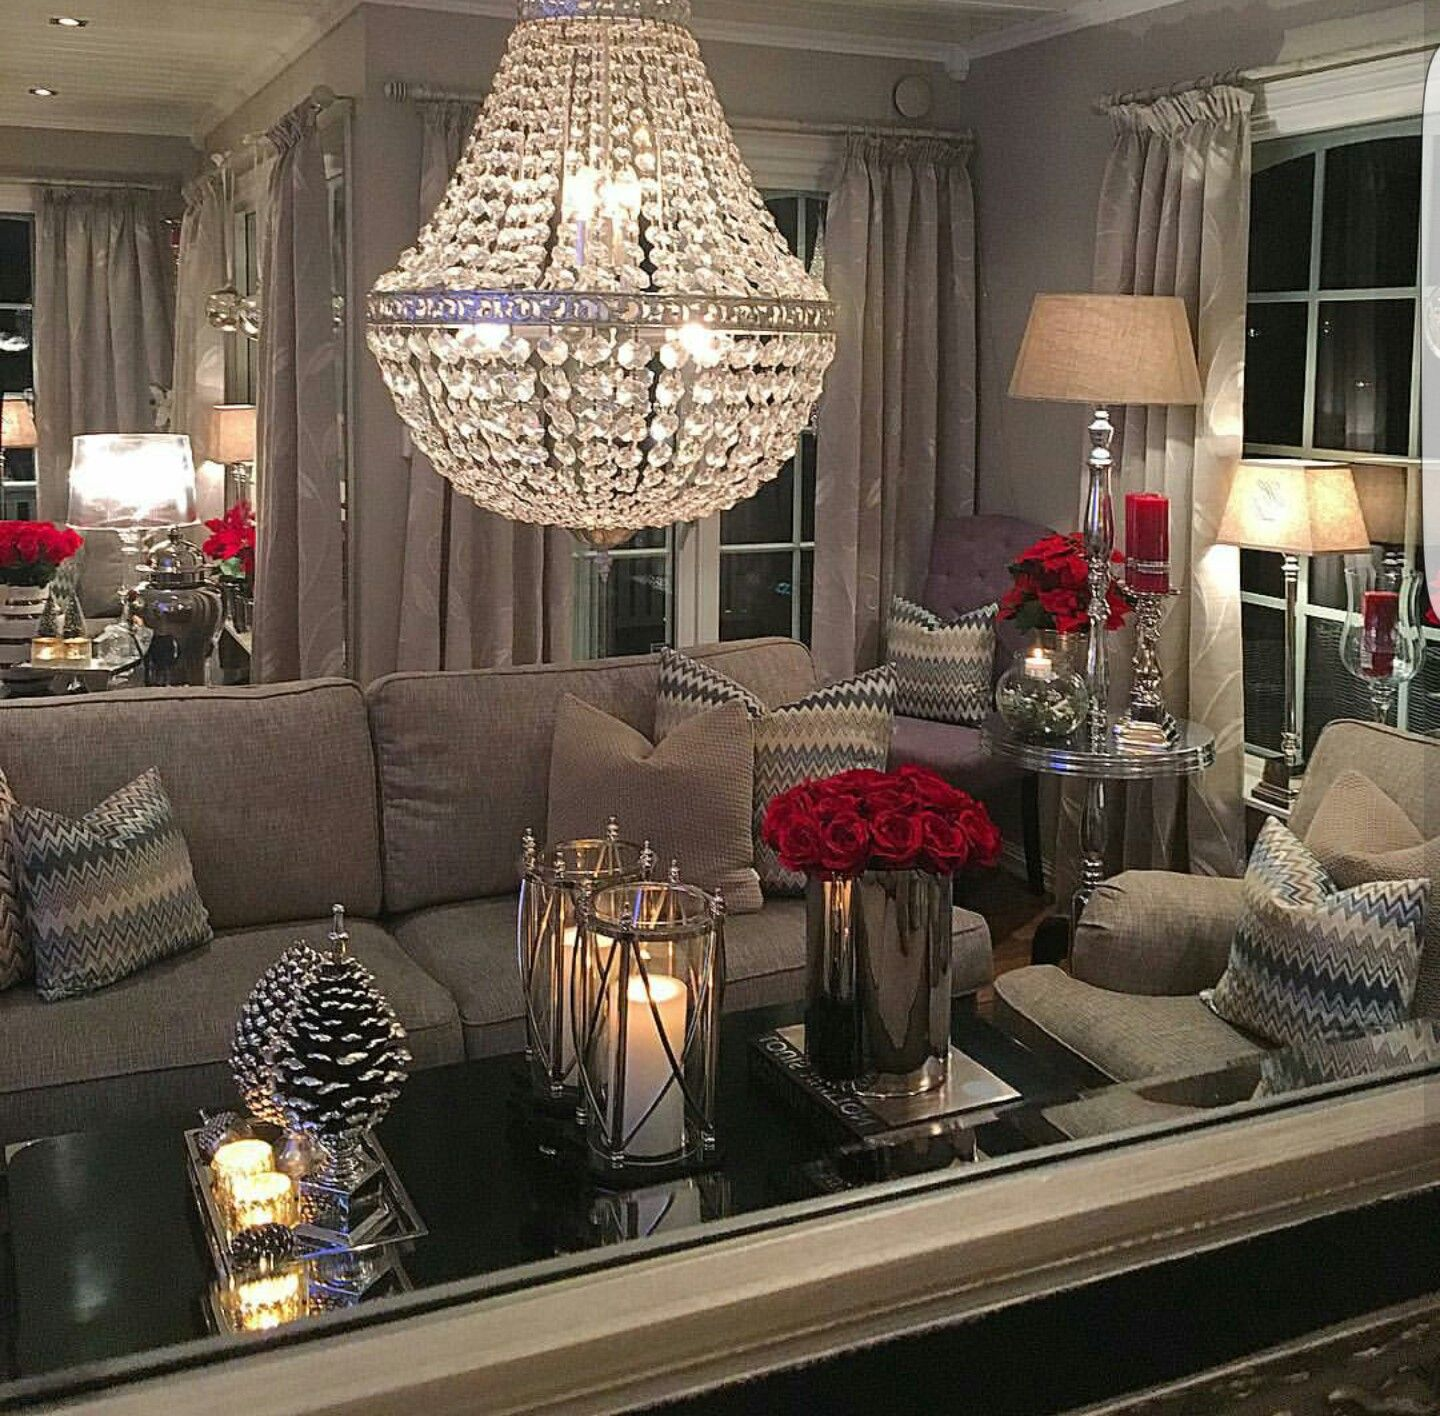 Maroon Grey And White Living Room: What Lovely Room....I Love The Red Accents With The